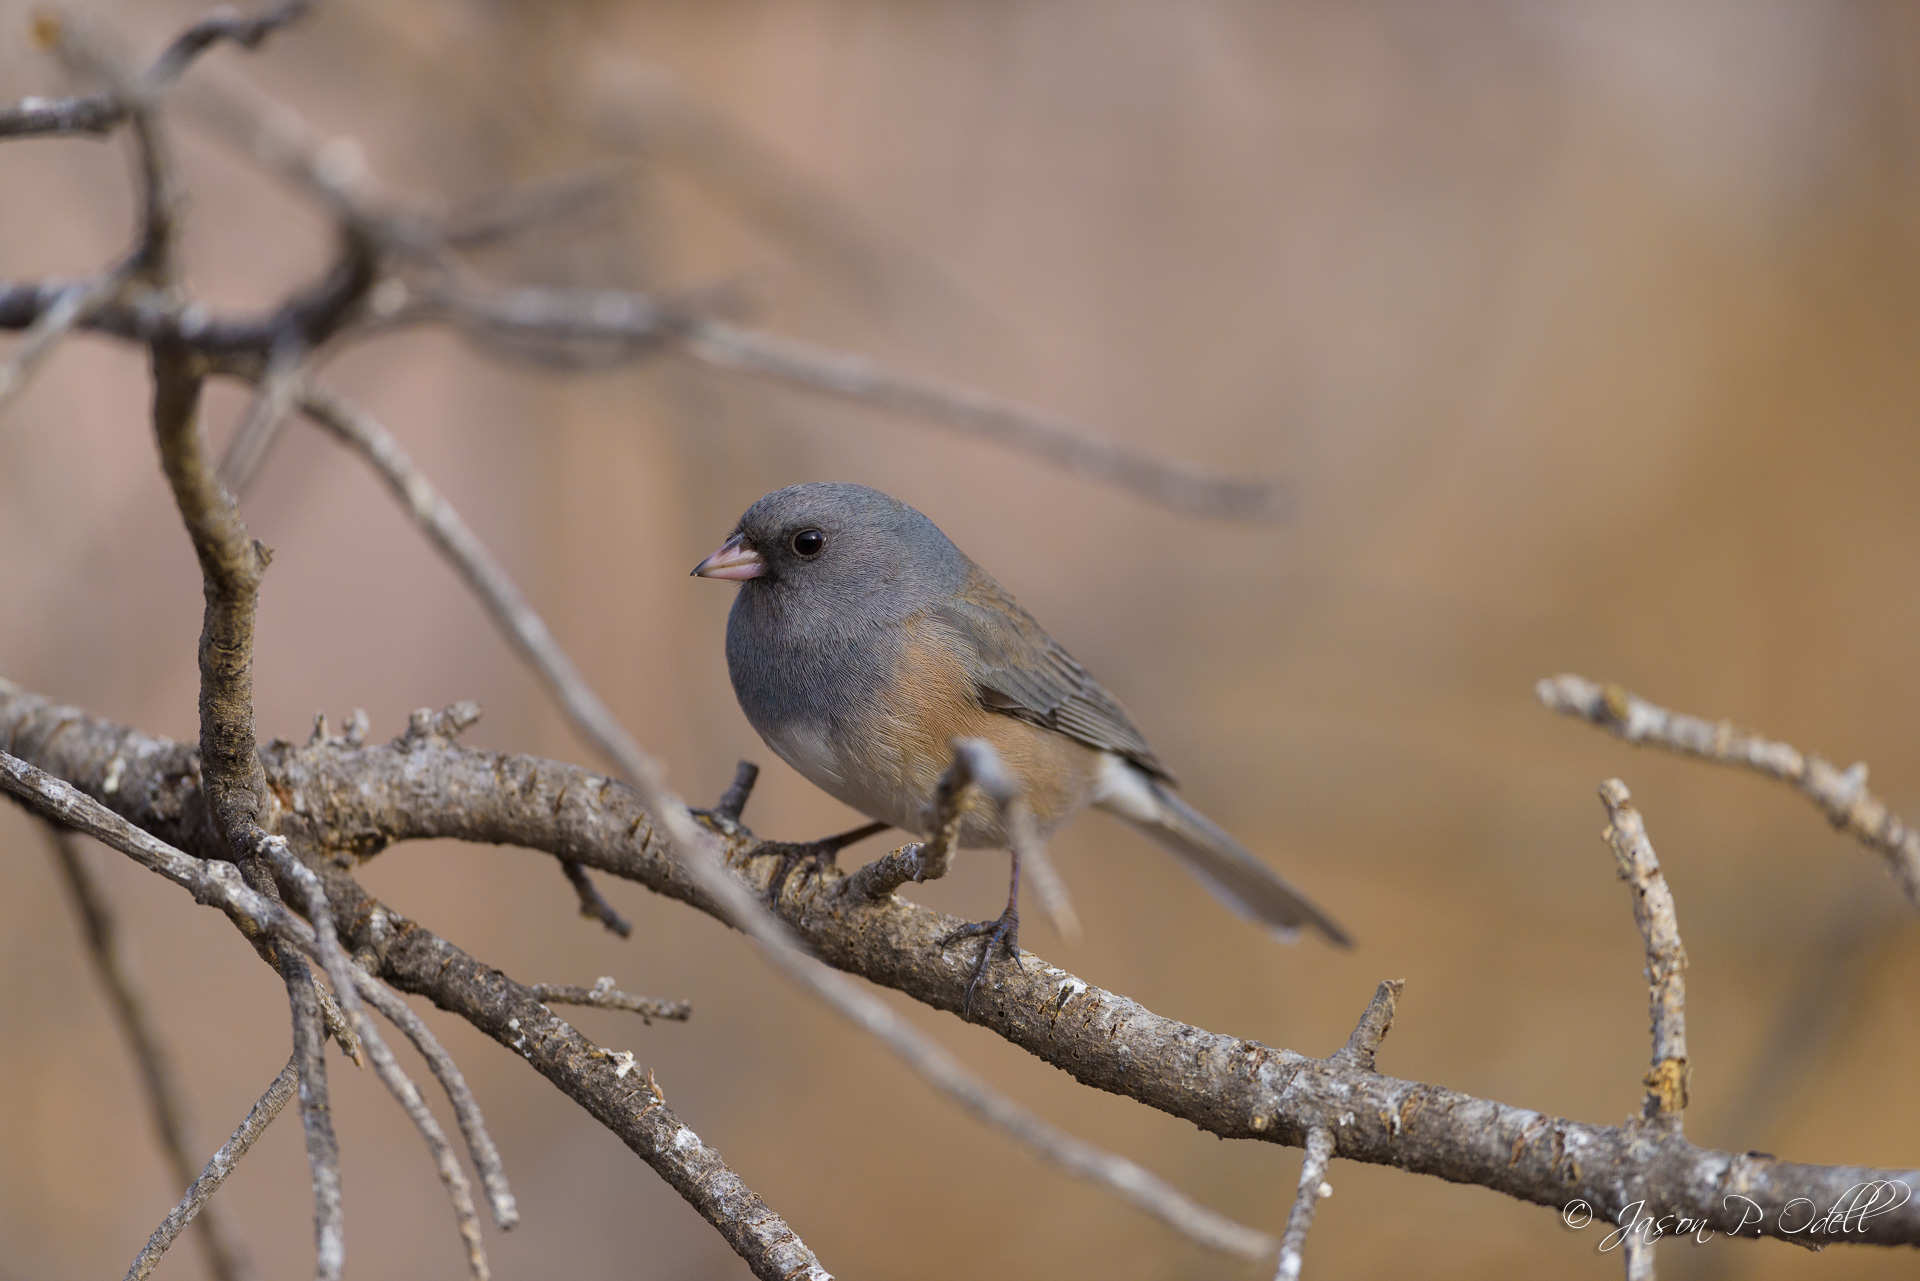 Dark-eyed junco, full frame image in FX crop, 1/1600s @f/4.0.